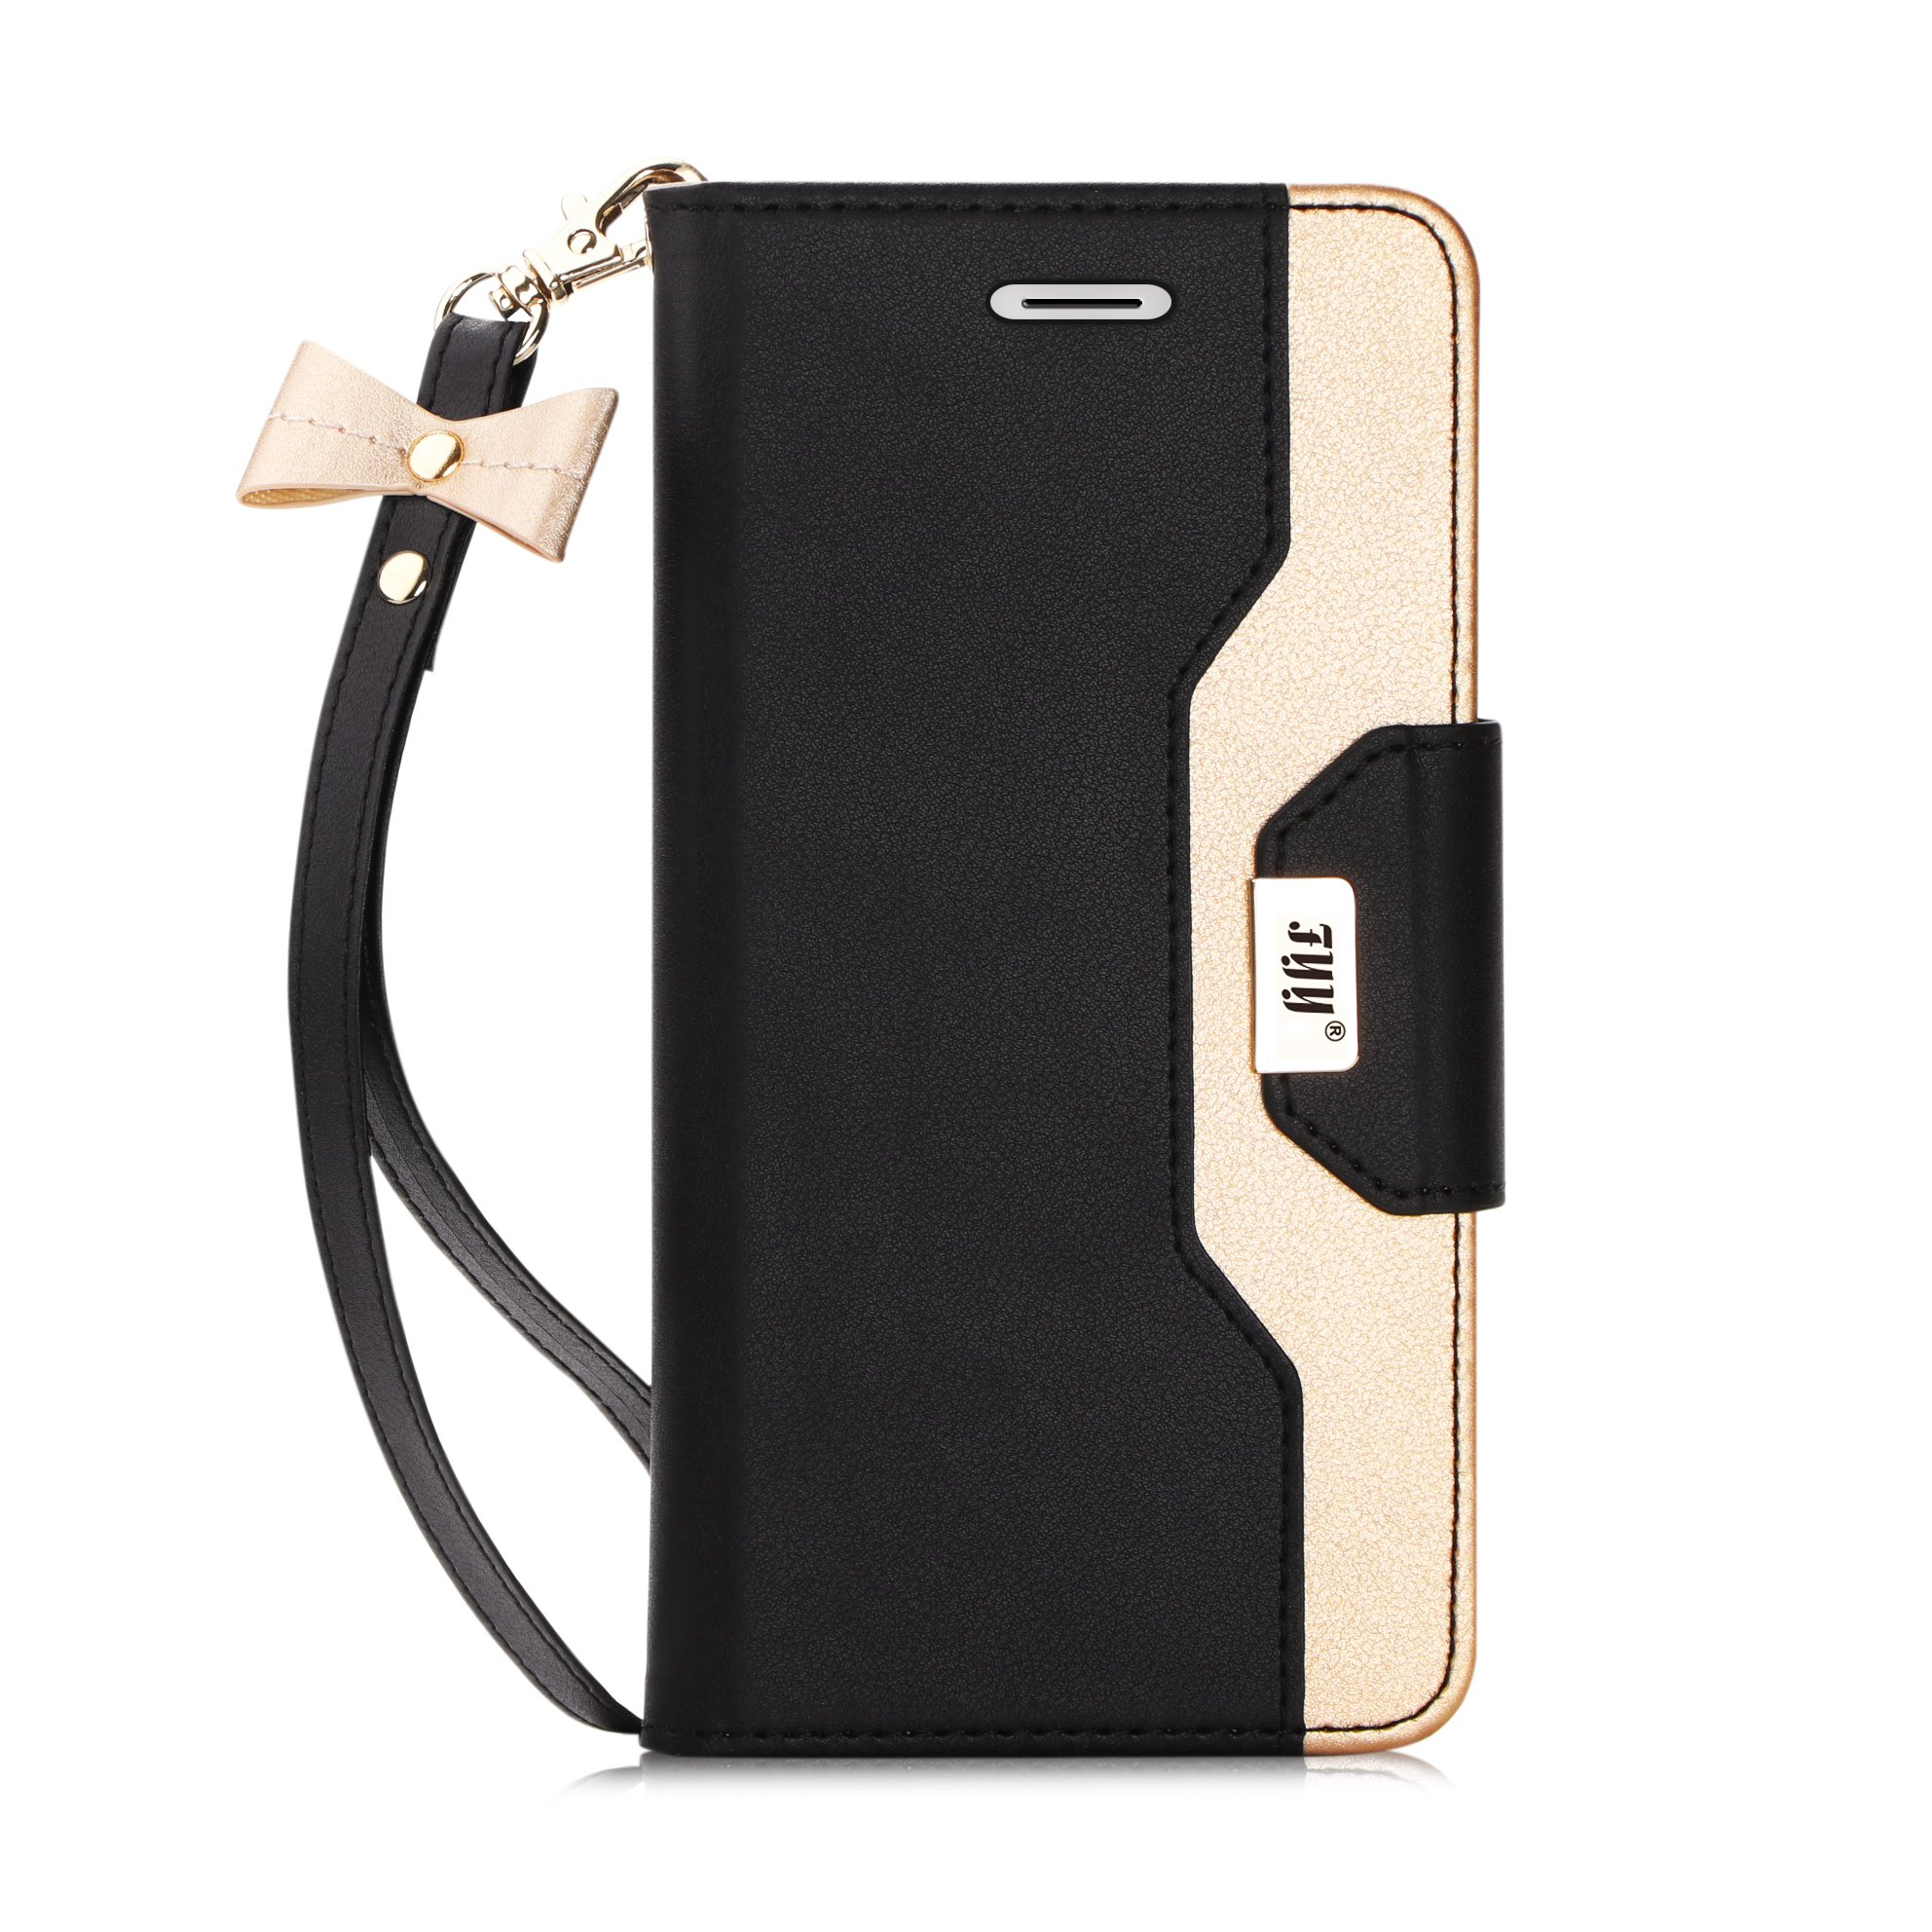 FYY Case for iPhone 8/iPhone 7, [RFID Blocking Wallet] [Makeup Mirror] Premium PU Leather Wallet Case with Cosmetic Mirror and Bow-Knot Strap for iPhone 7/8 Black